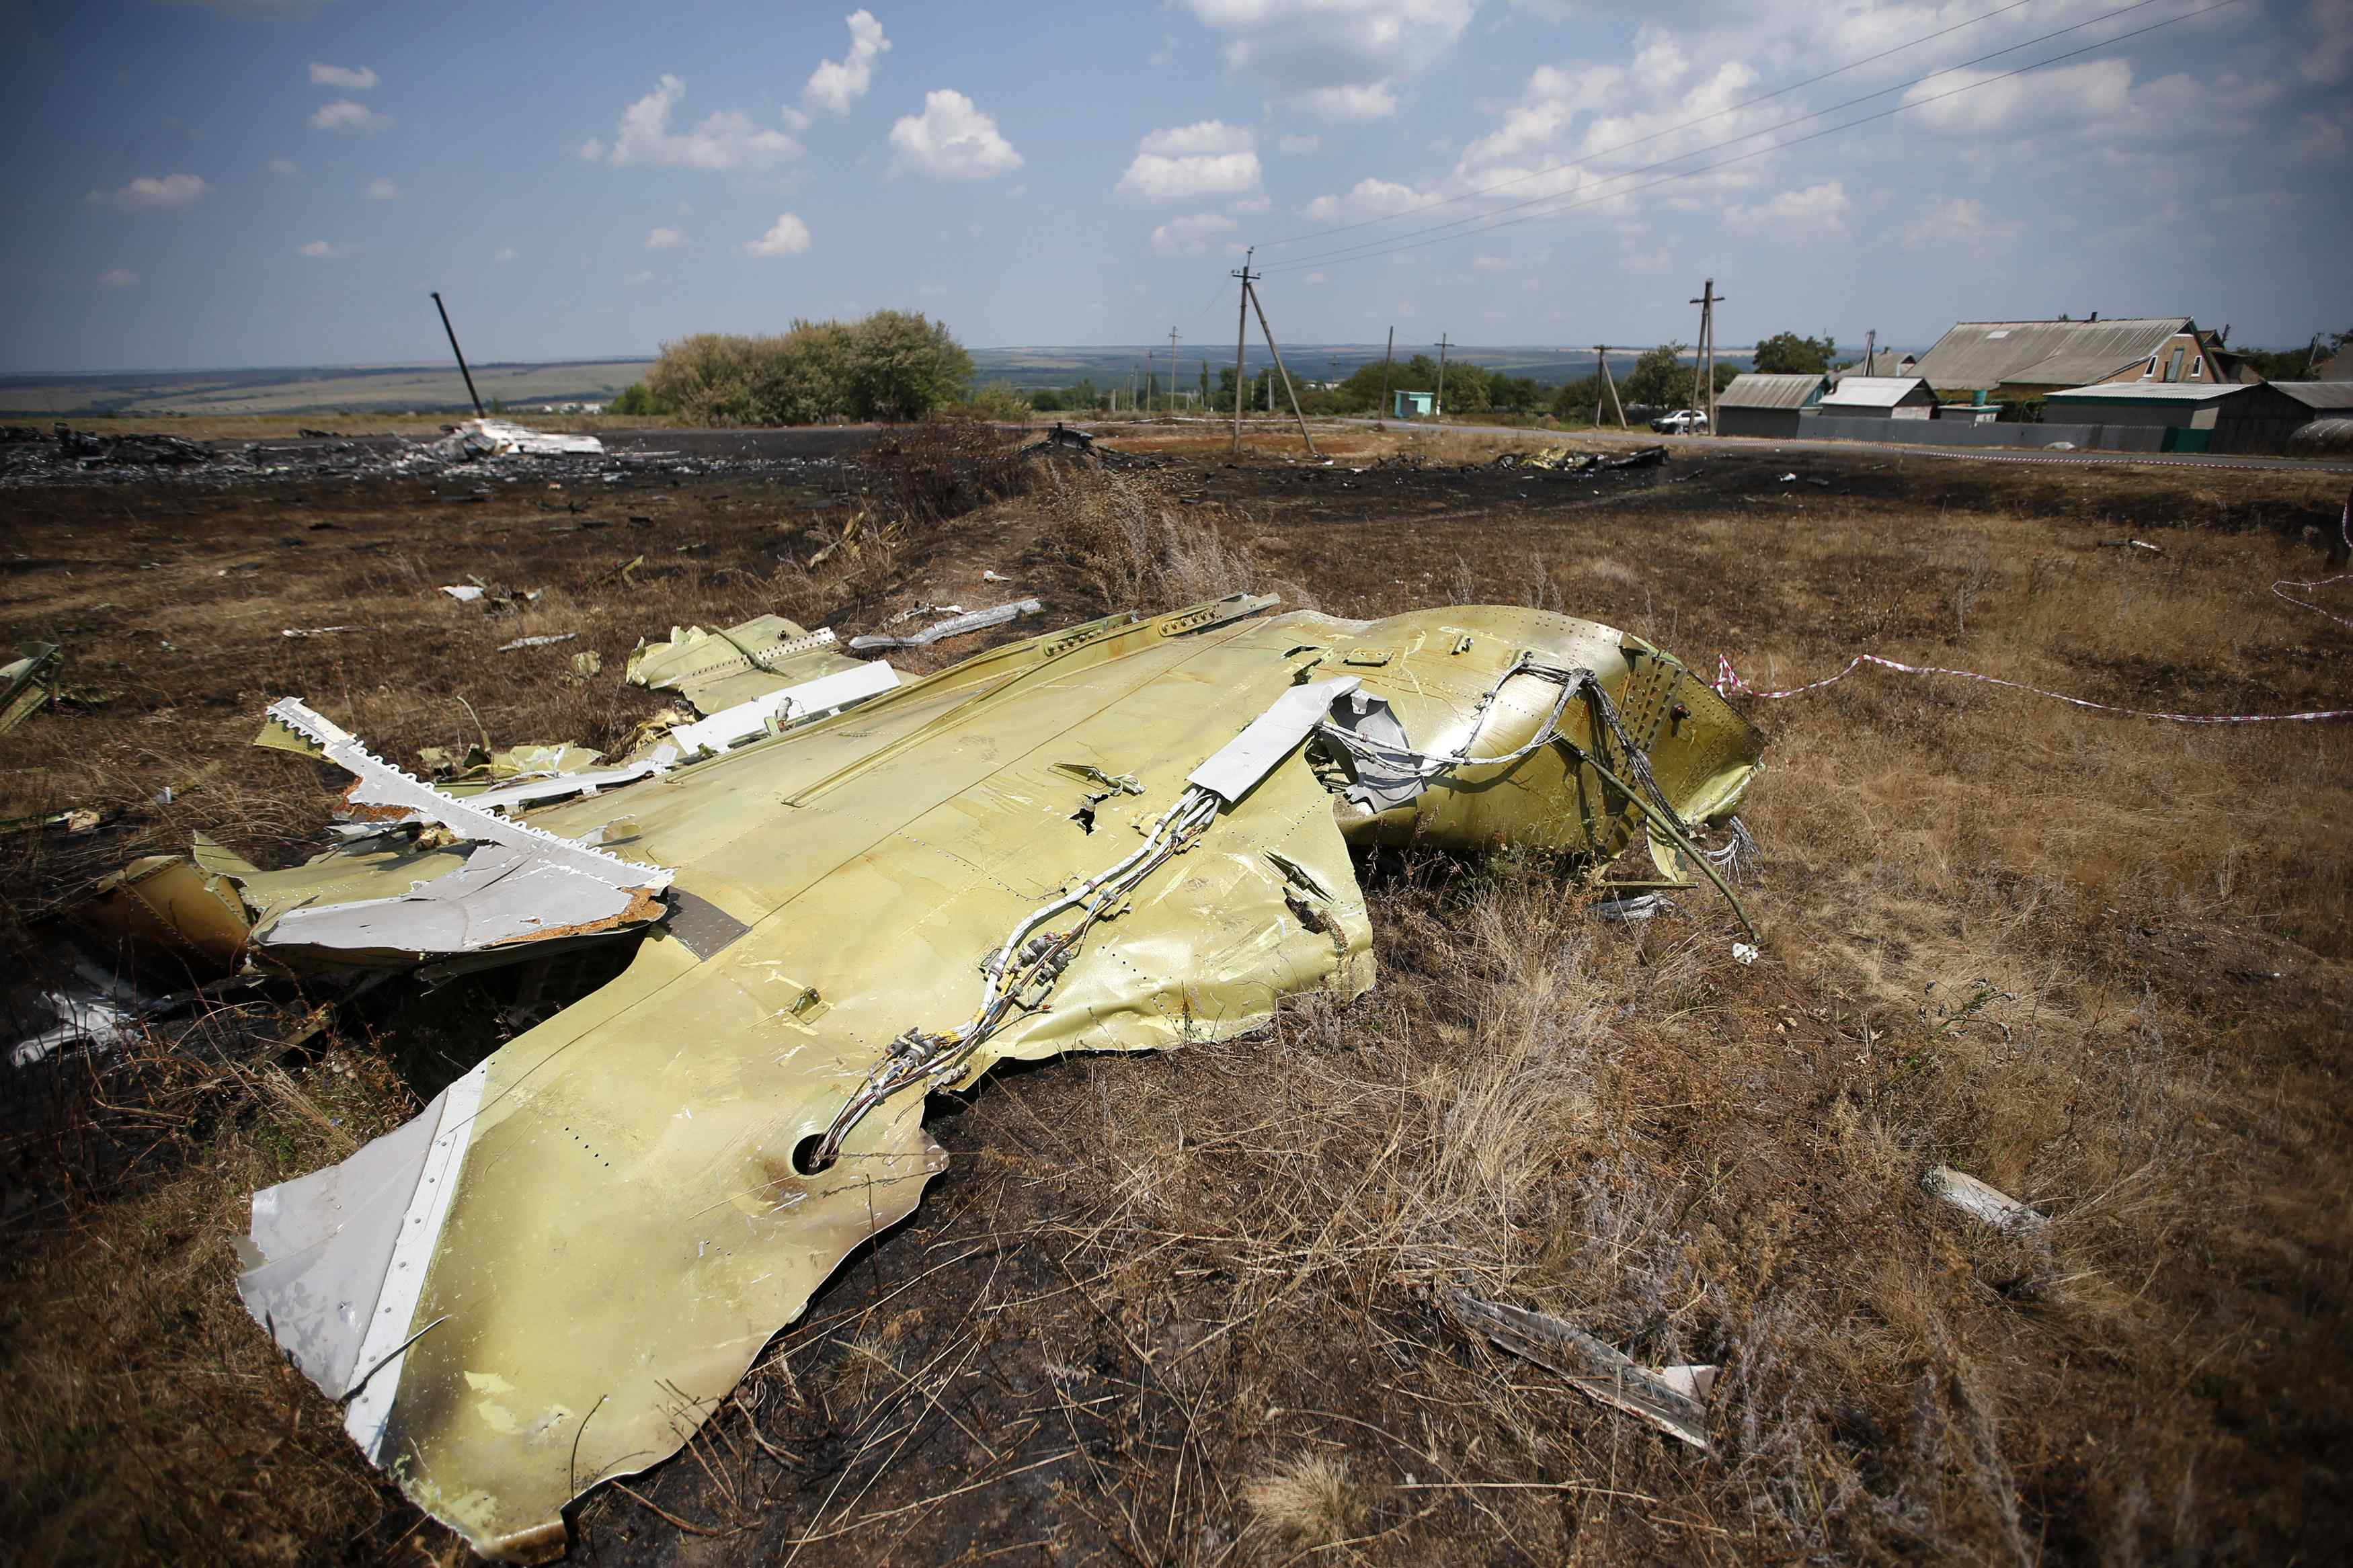 Debris is seen at the site where Malaysia Airlines MH17 crashed last Thursday, near Hrabove, Grabovo, in Donetsk yesterday.